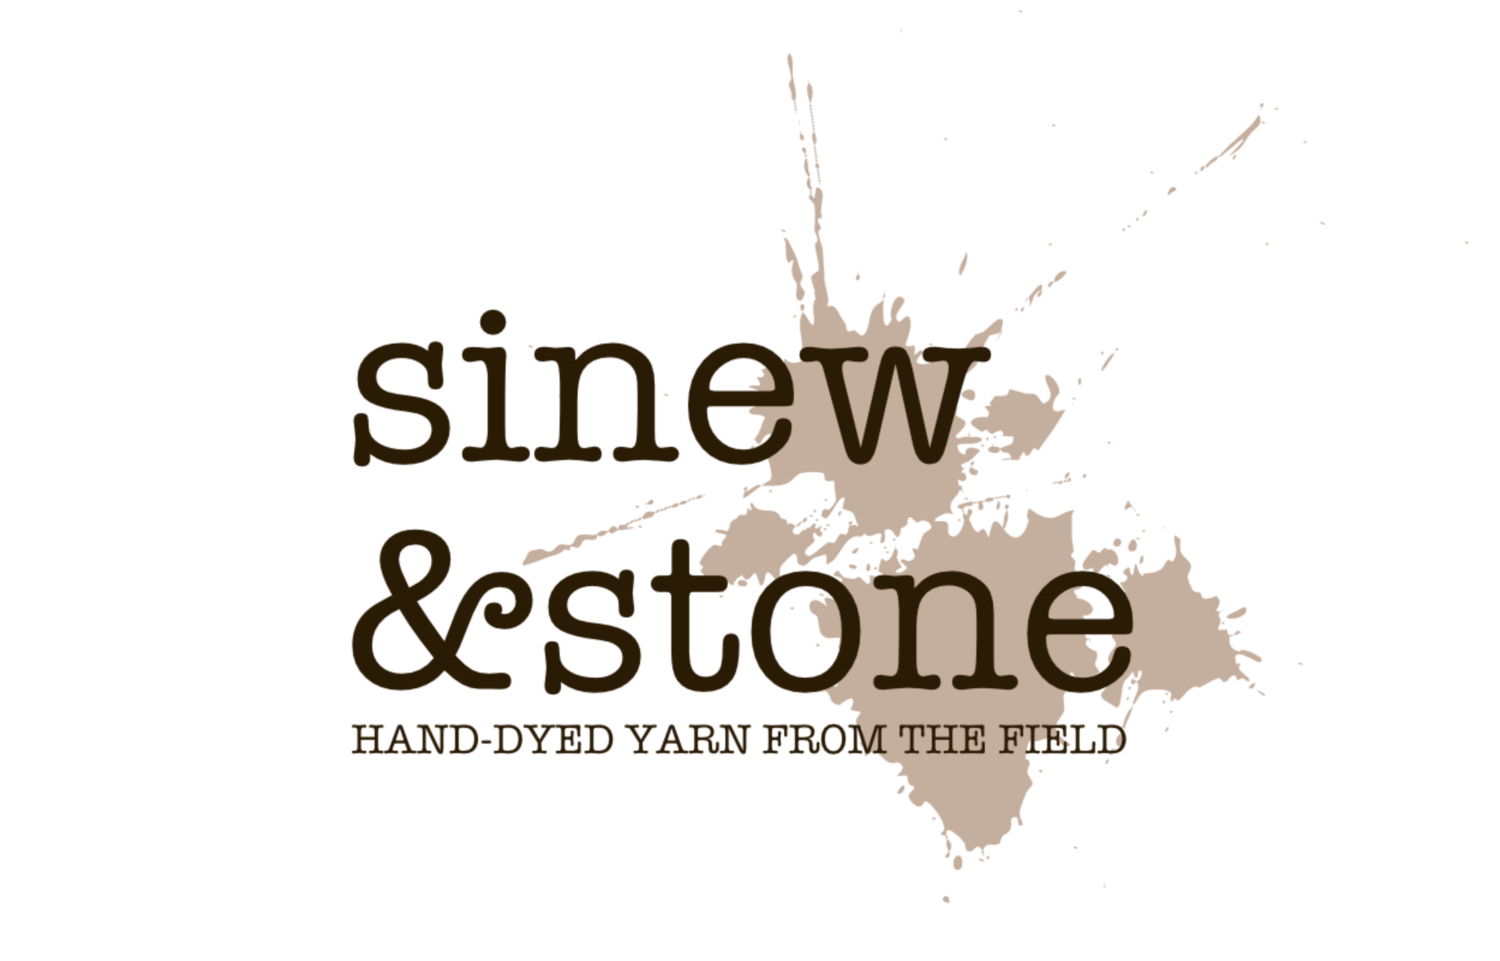 sinew and stone